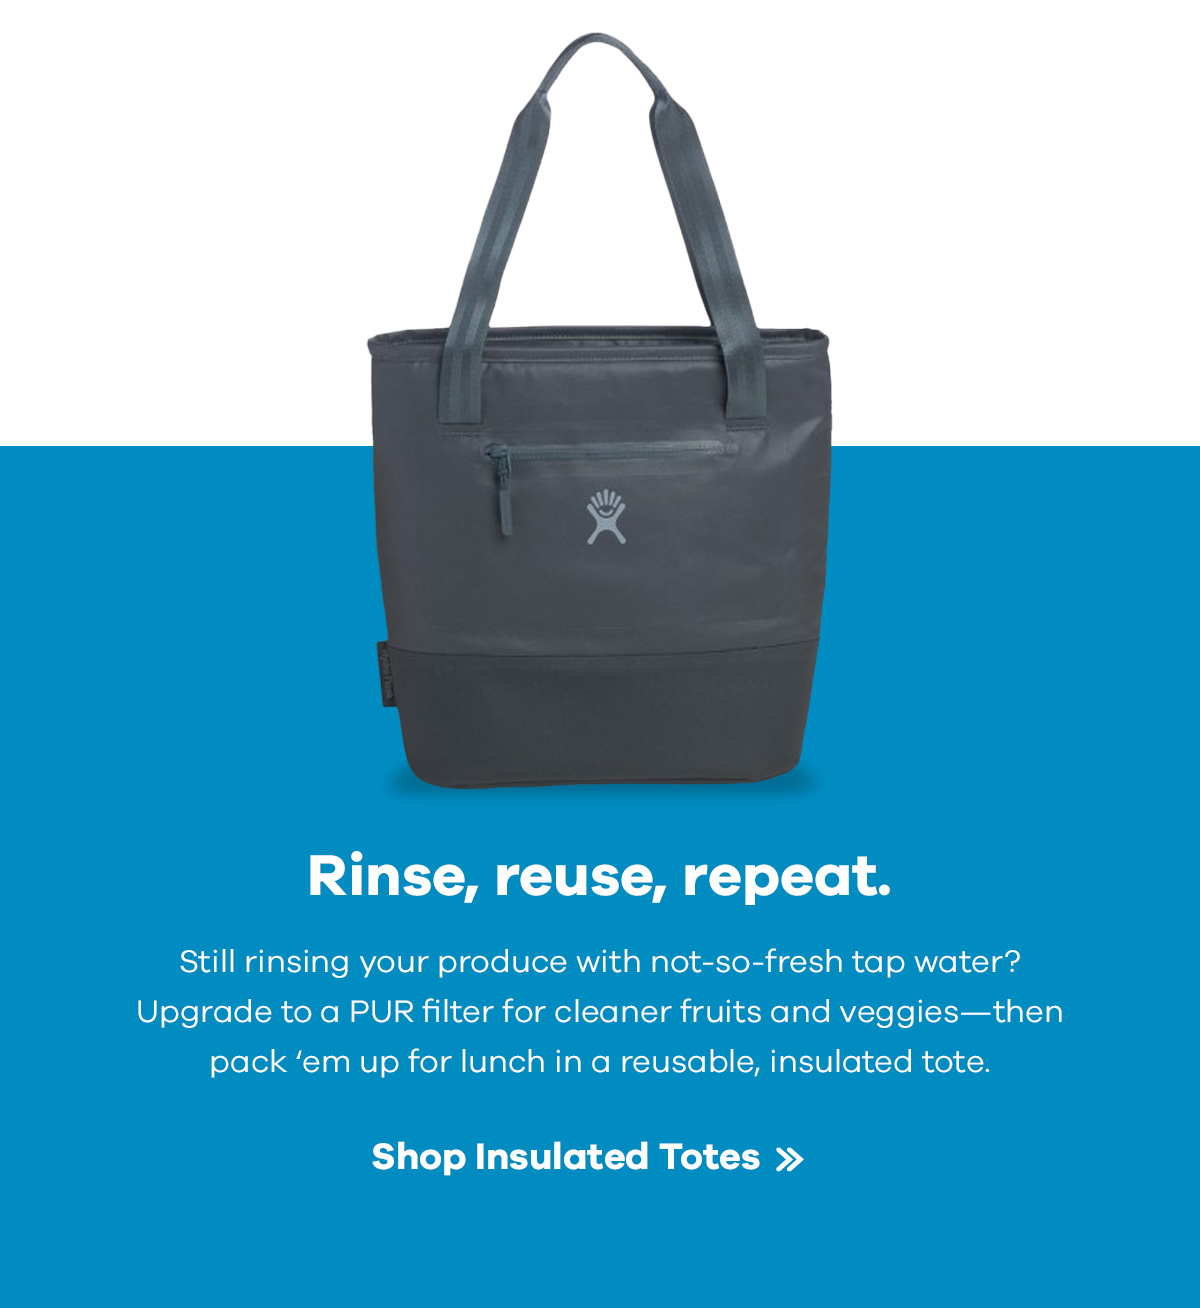 Rinse, reuse, repeat. | Still rinsing your produce with not-so-fresh tap water? Upgrade to a PUR filter for cleaner fruits and veggies -- then pack 'em up for lunch in a reusable, insulated tote. | Shop Insulated Totes >>